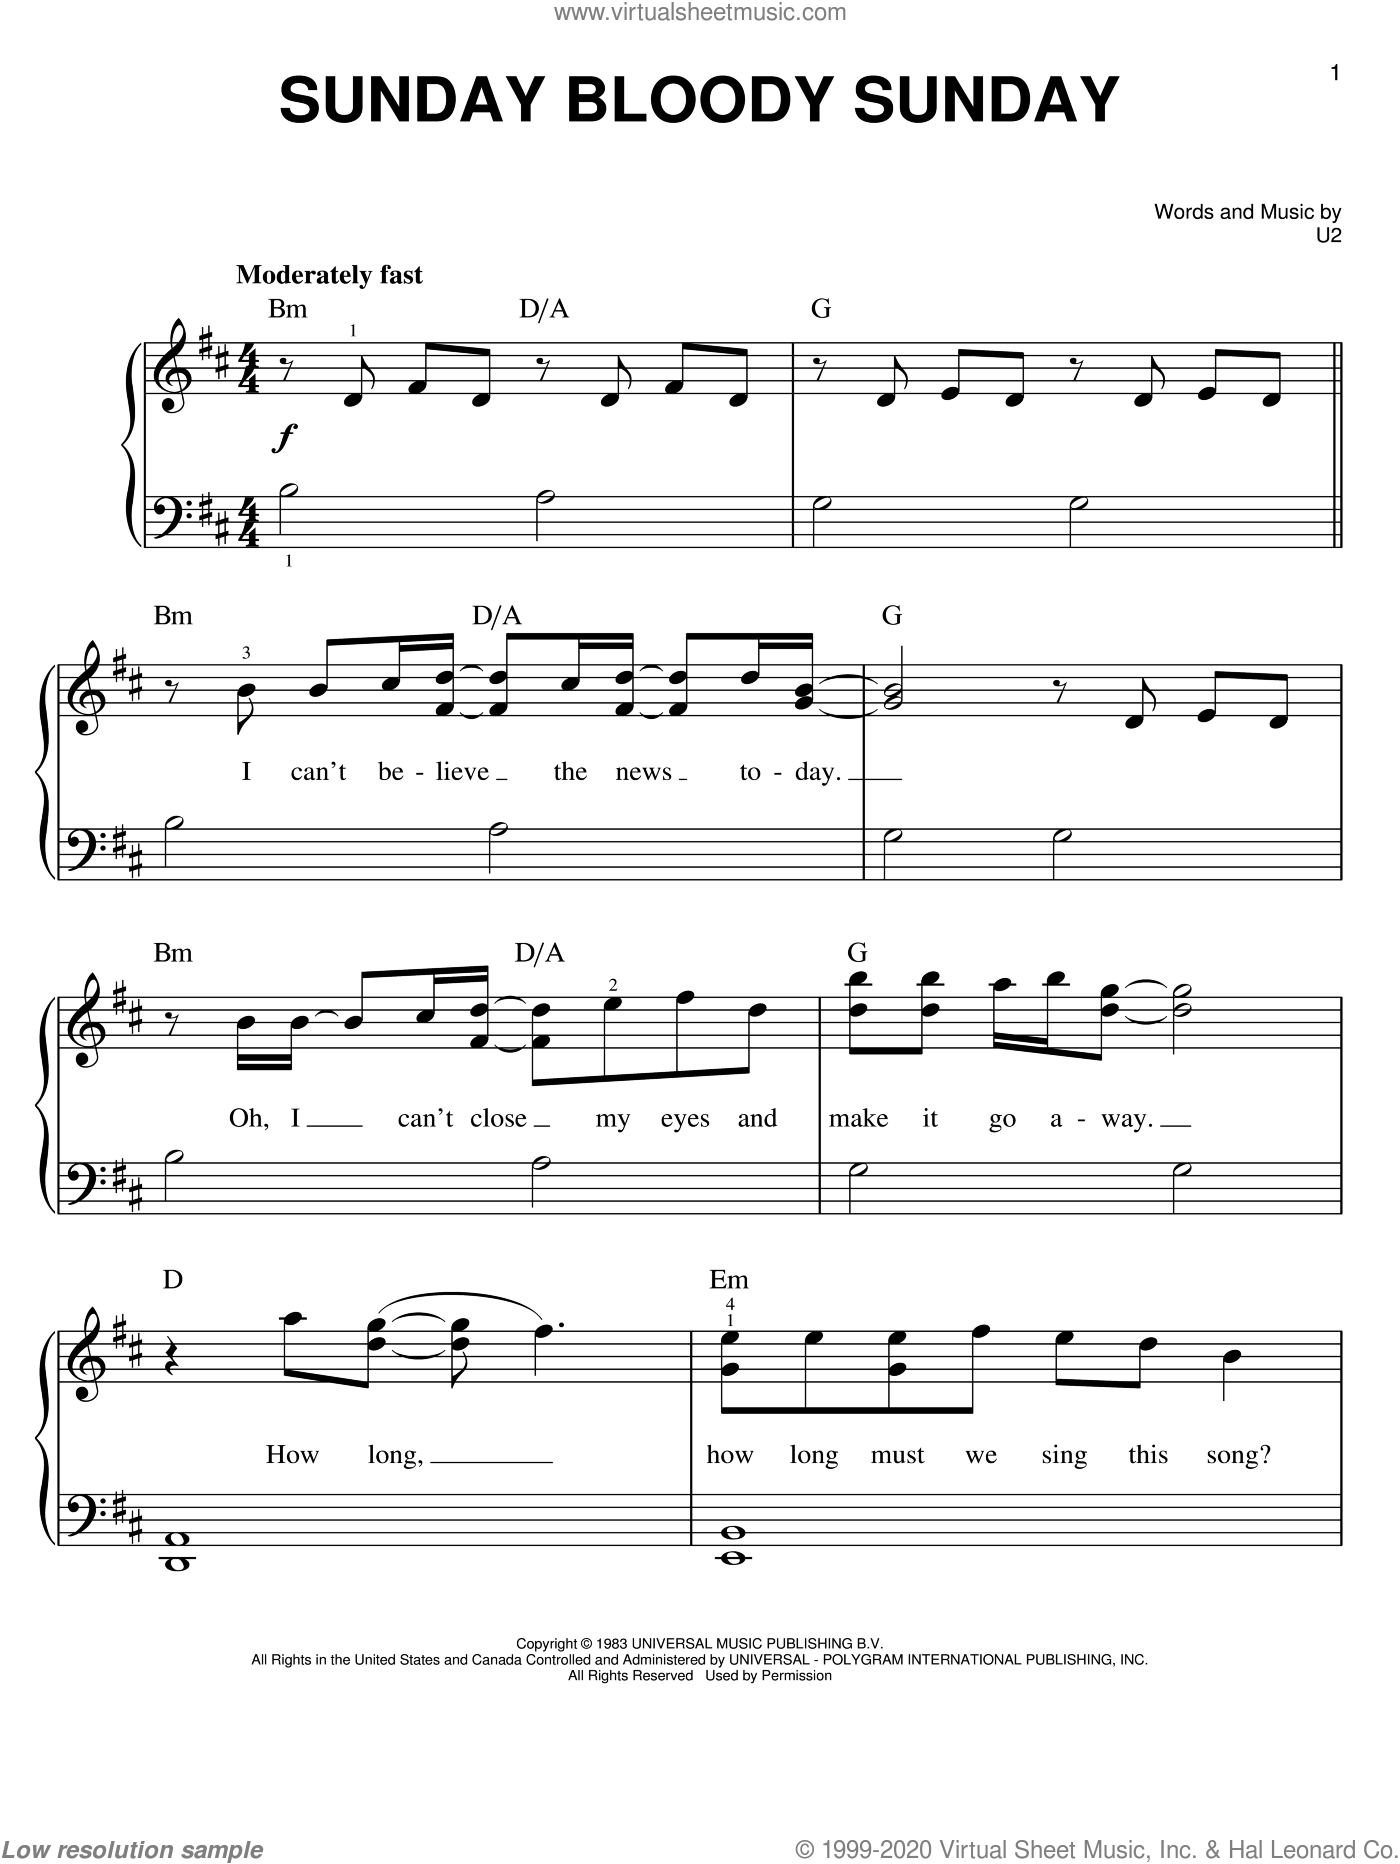 Sunday Bloody Sunday sheet music for piano solo by U2, easy skill level